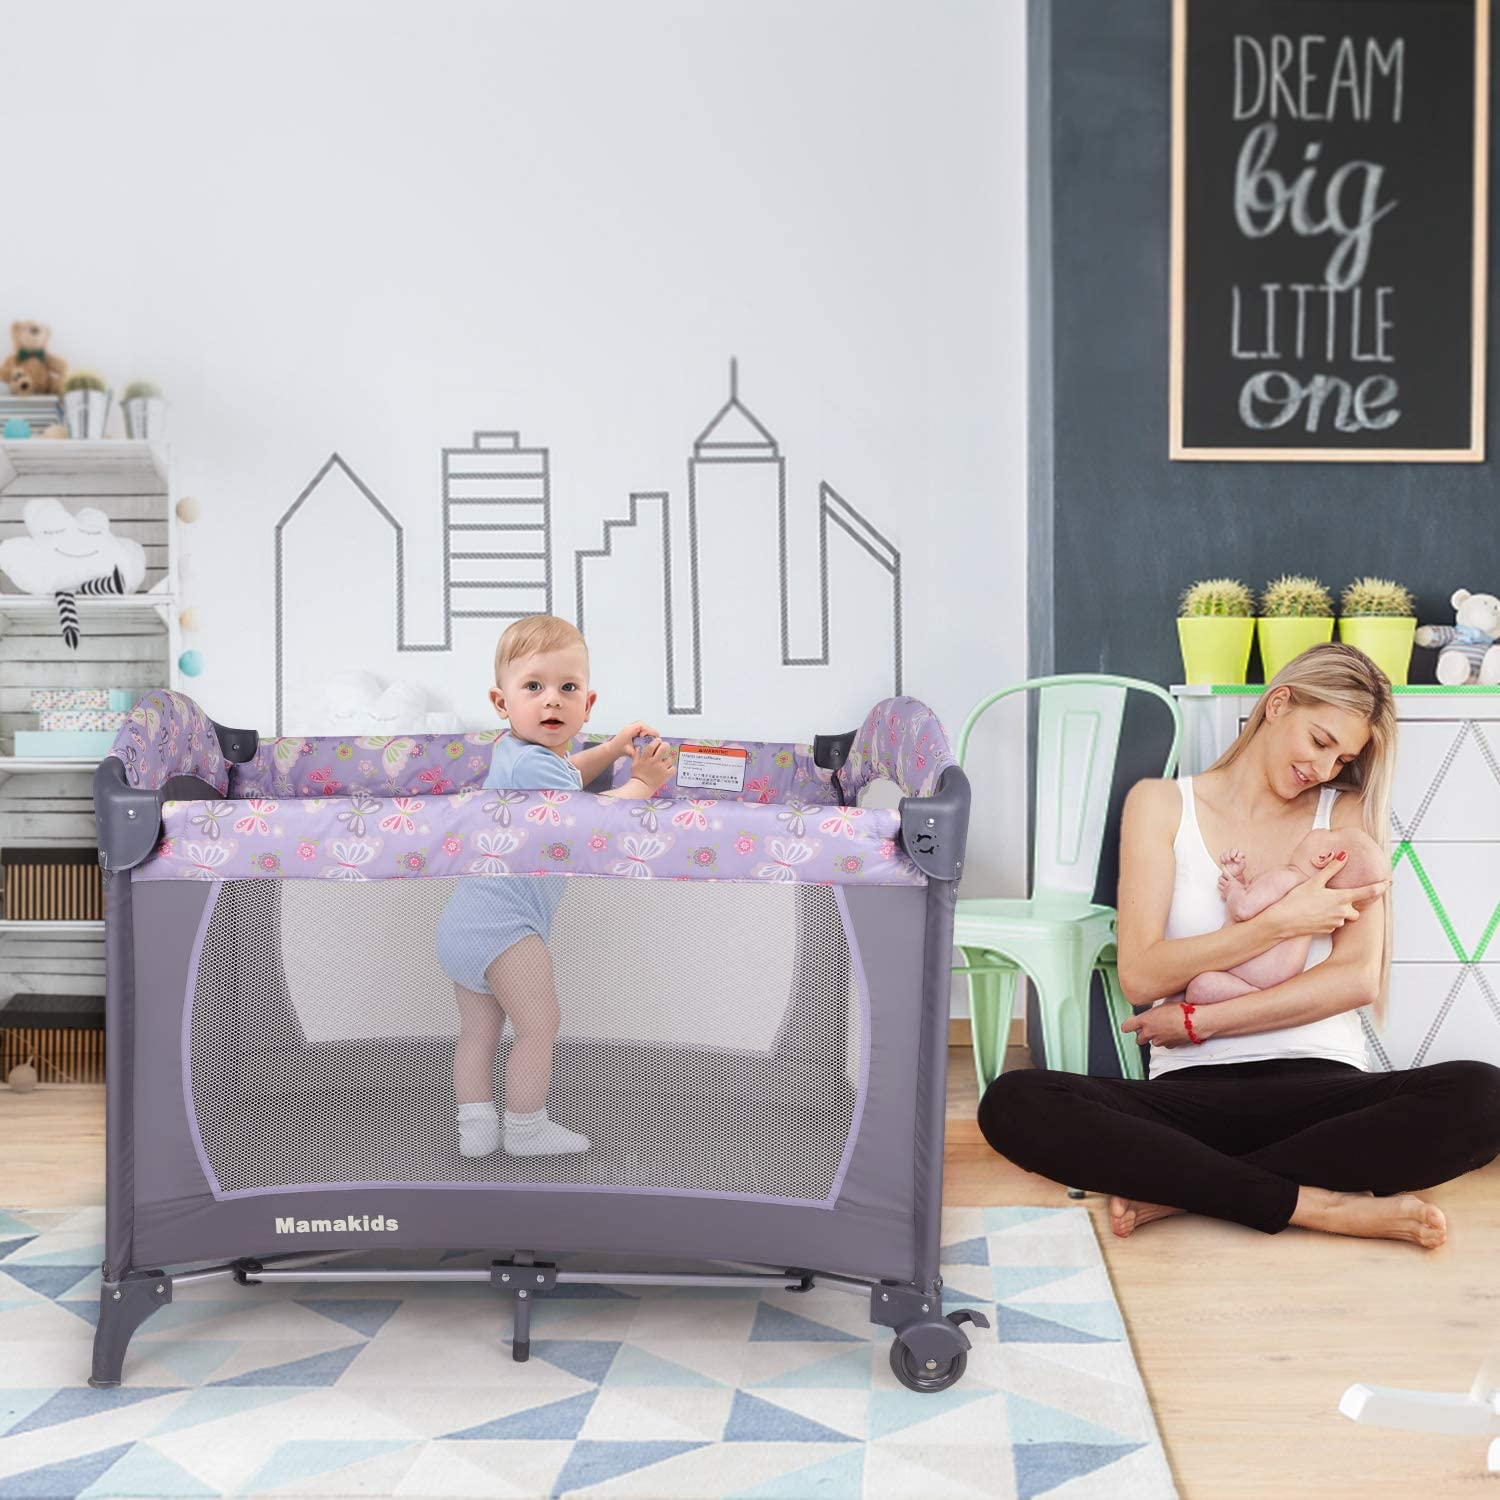 Portable Baby Travel Cot Crib Bassinet Bed Playpen Infants with Mattress & Music